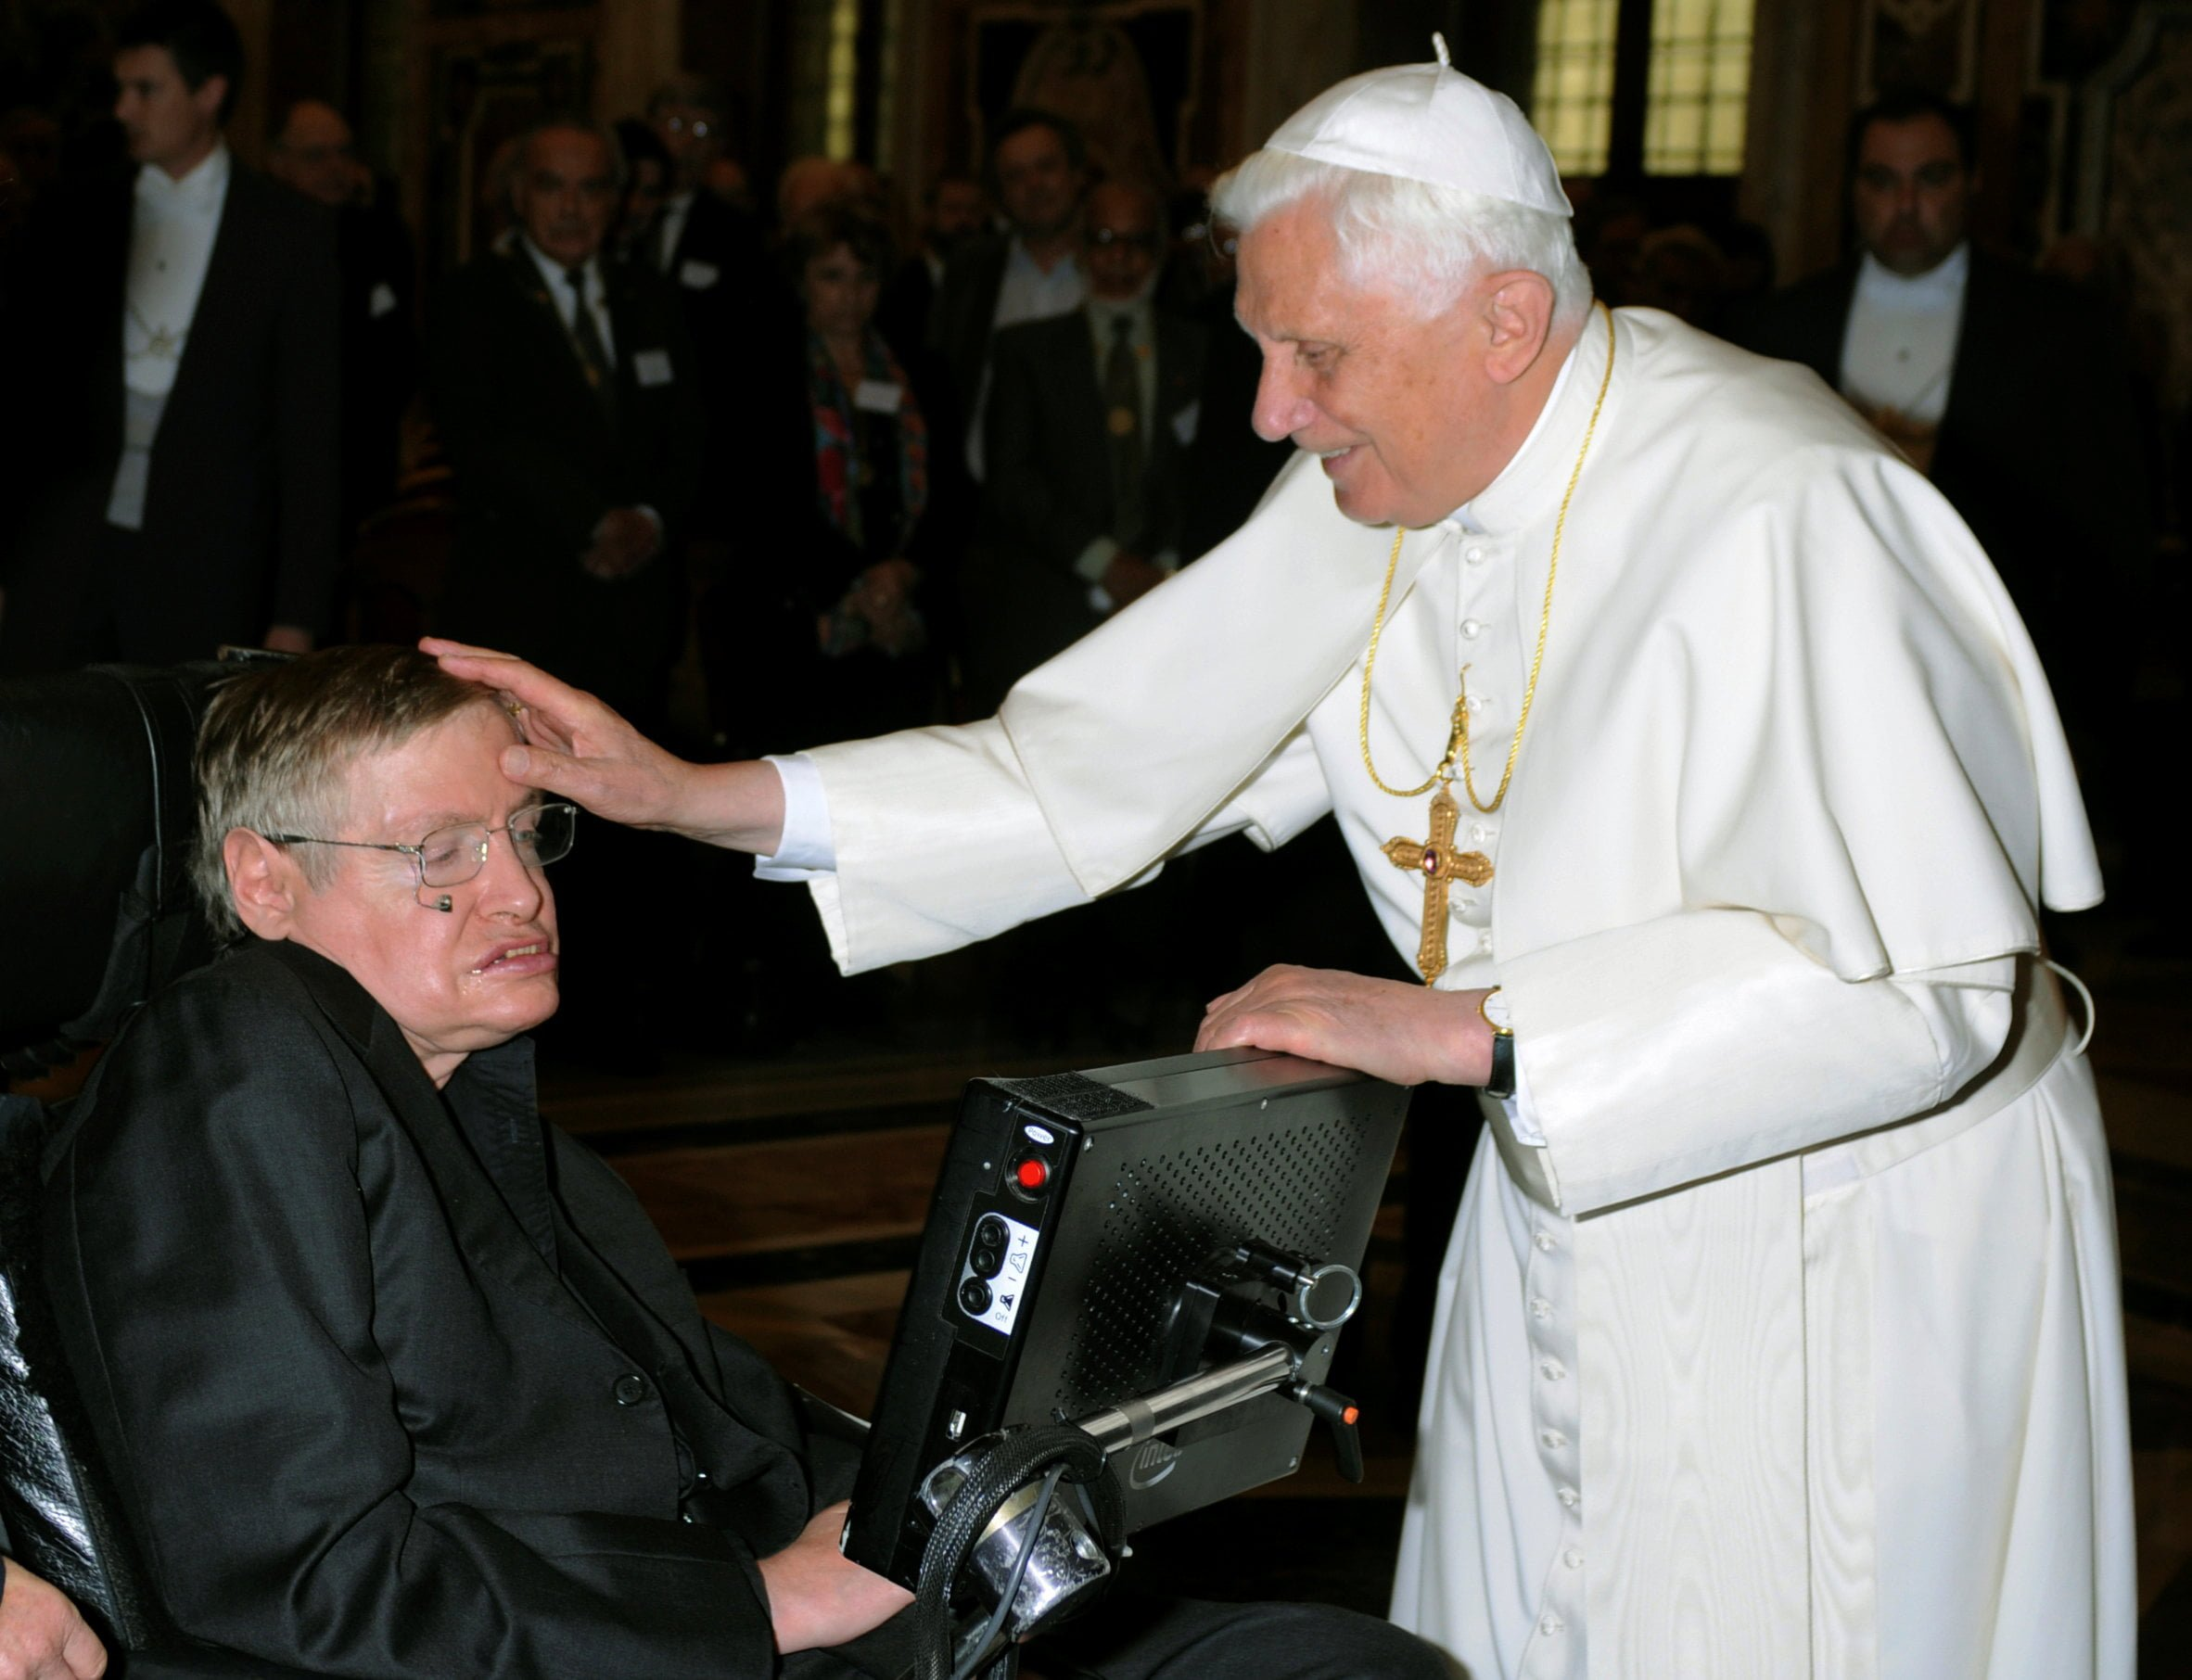 FILE PHOTO: Pope Benedict XVI greets British professor Hawking during a meeting of science academics at the Vatican